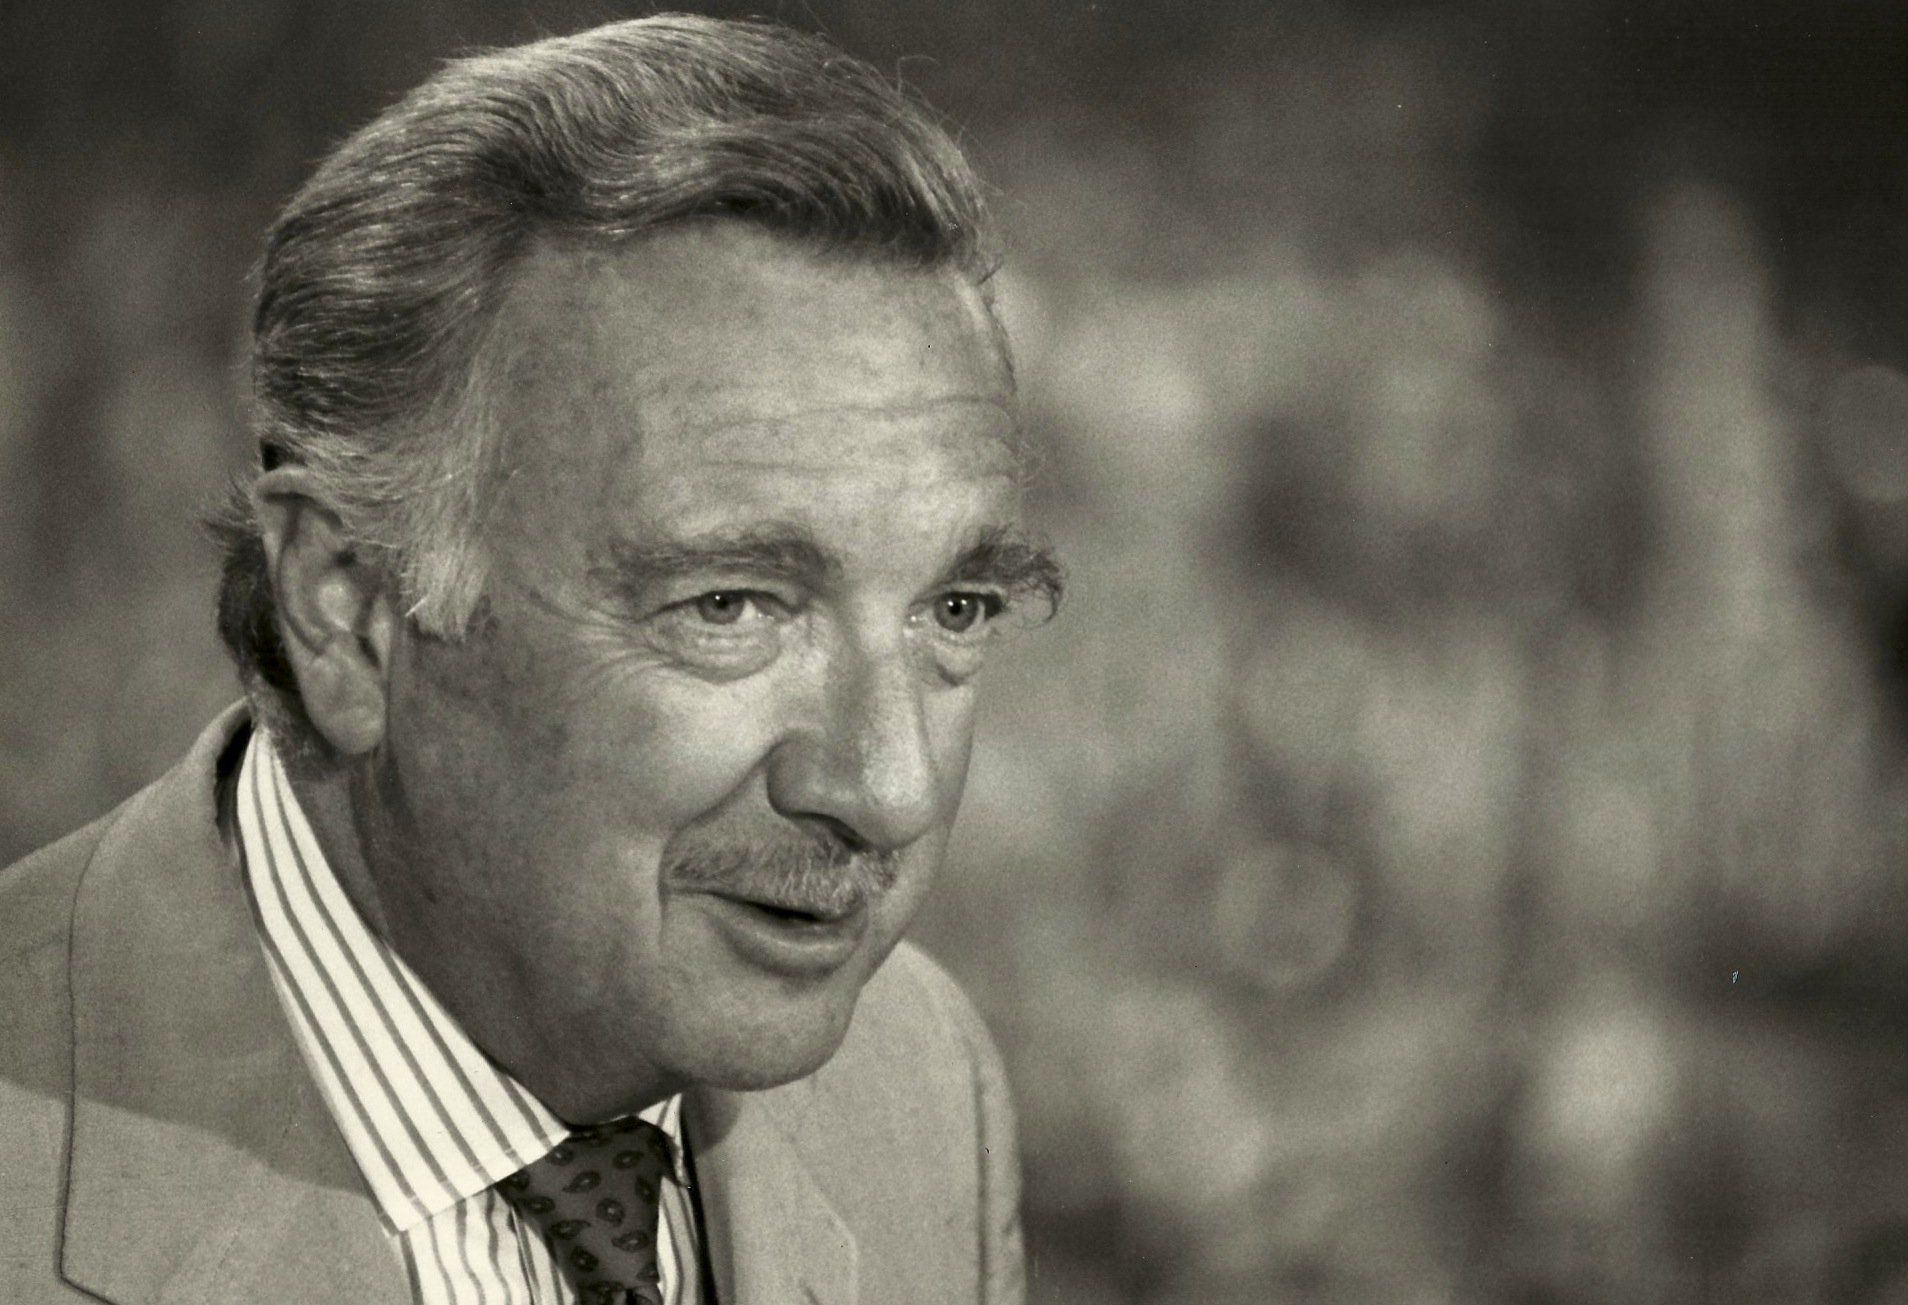 walter cronkite Walter leland cronkite, jr was an american broadcast journalist, best known as anchorman for the cbs evening news for 19 years (1962 –1981 ) during the heyday of cbs news in the 1960s and 1970s, he was often cited as &quotthe most trusted man in america&quot after being so named in an opinion poll he.